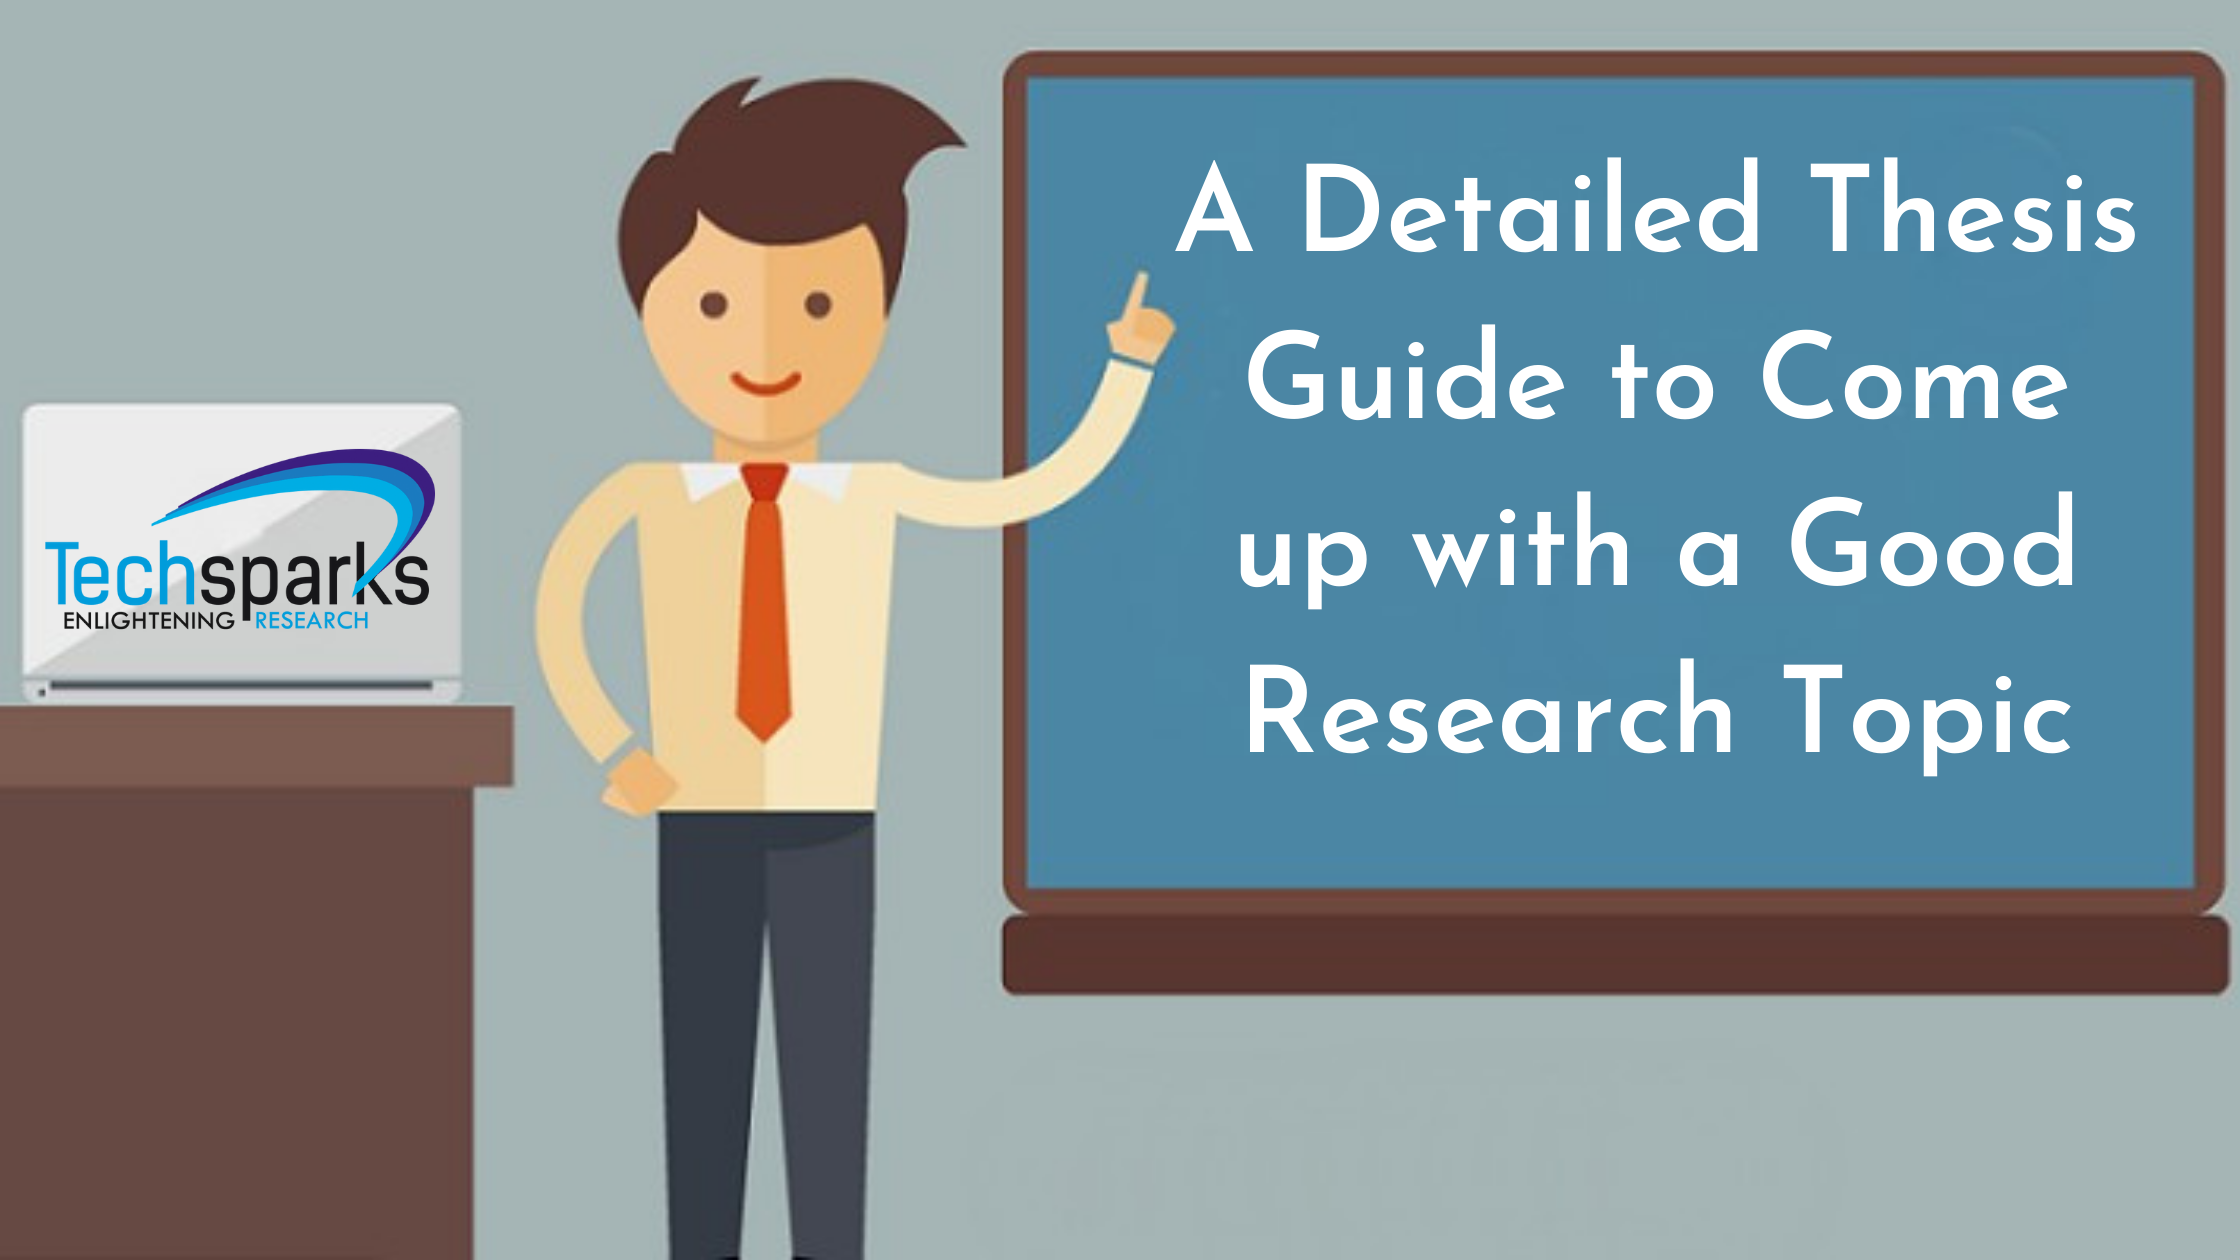 A Detailed Thesis Guide to Come up with a Good Research Topic